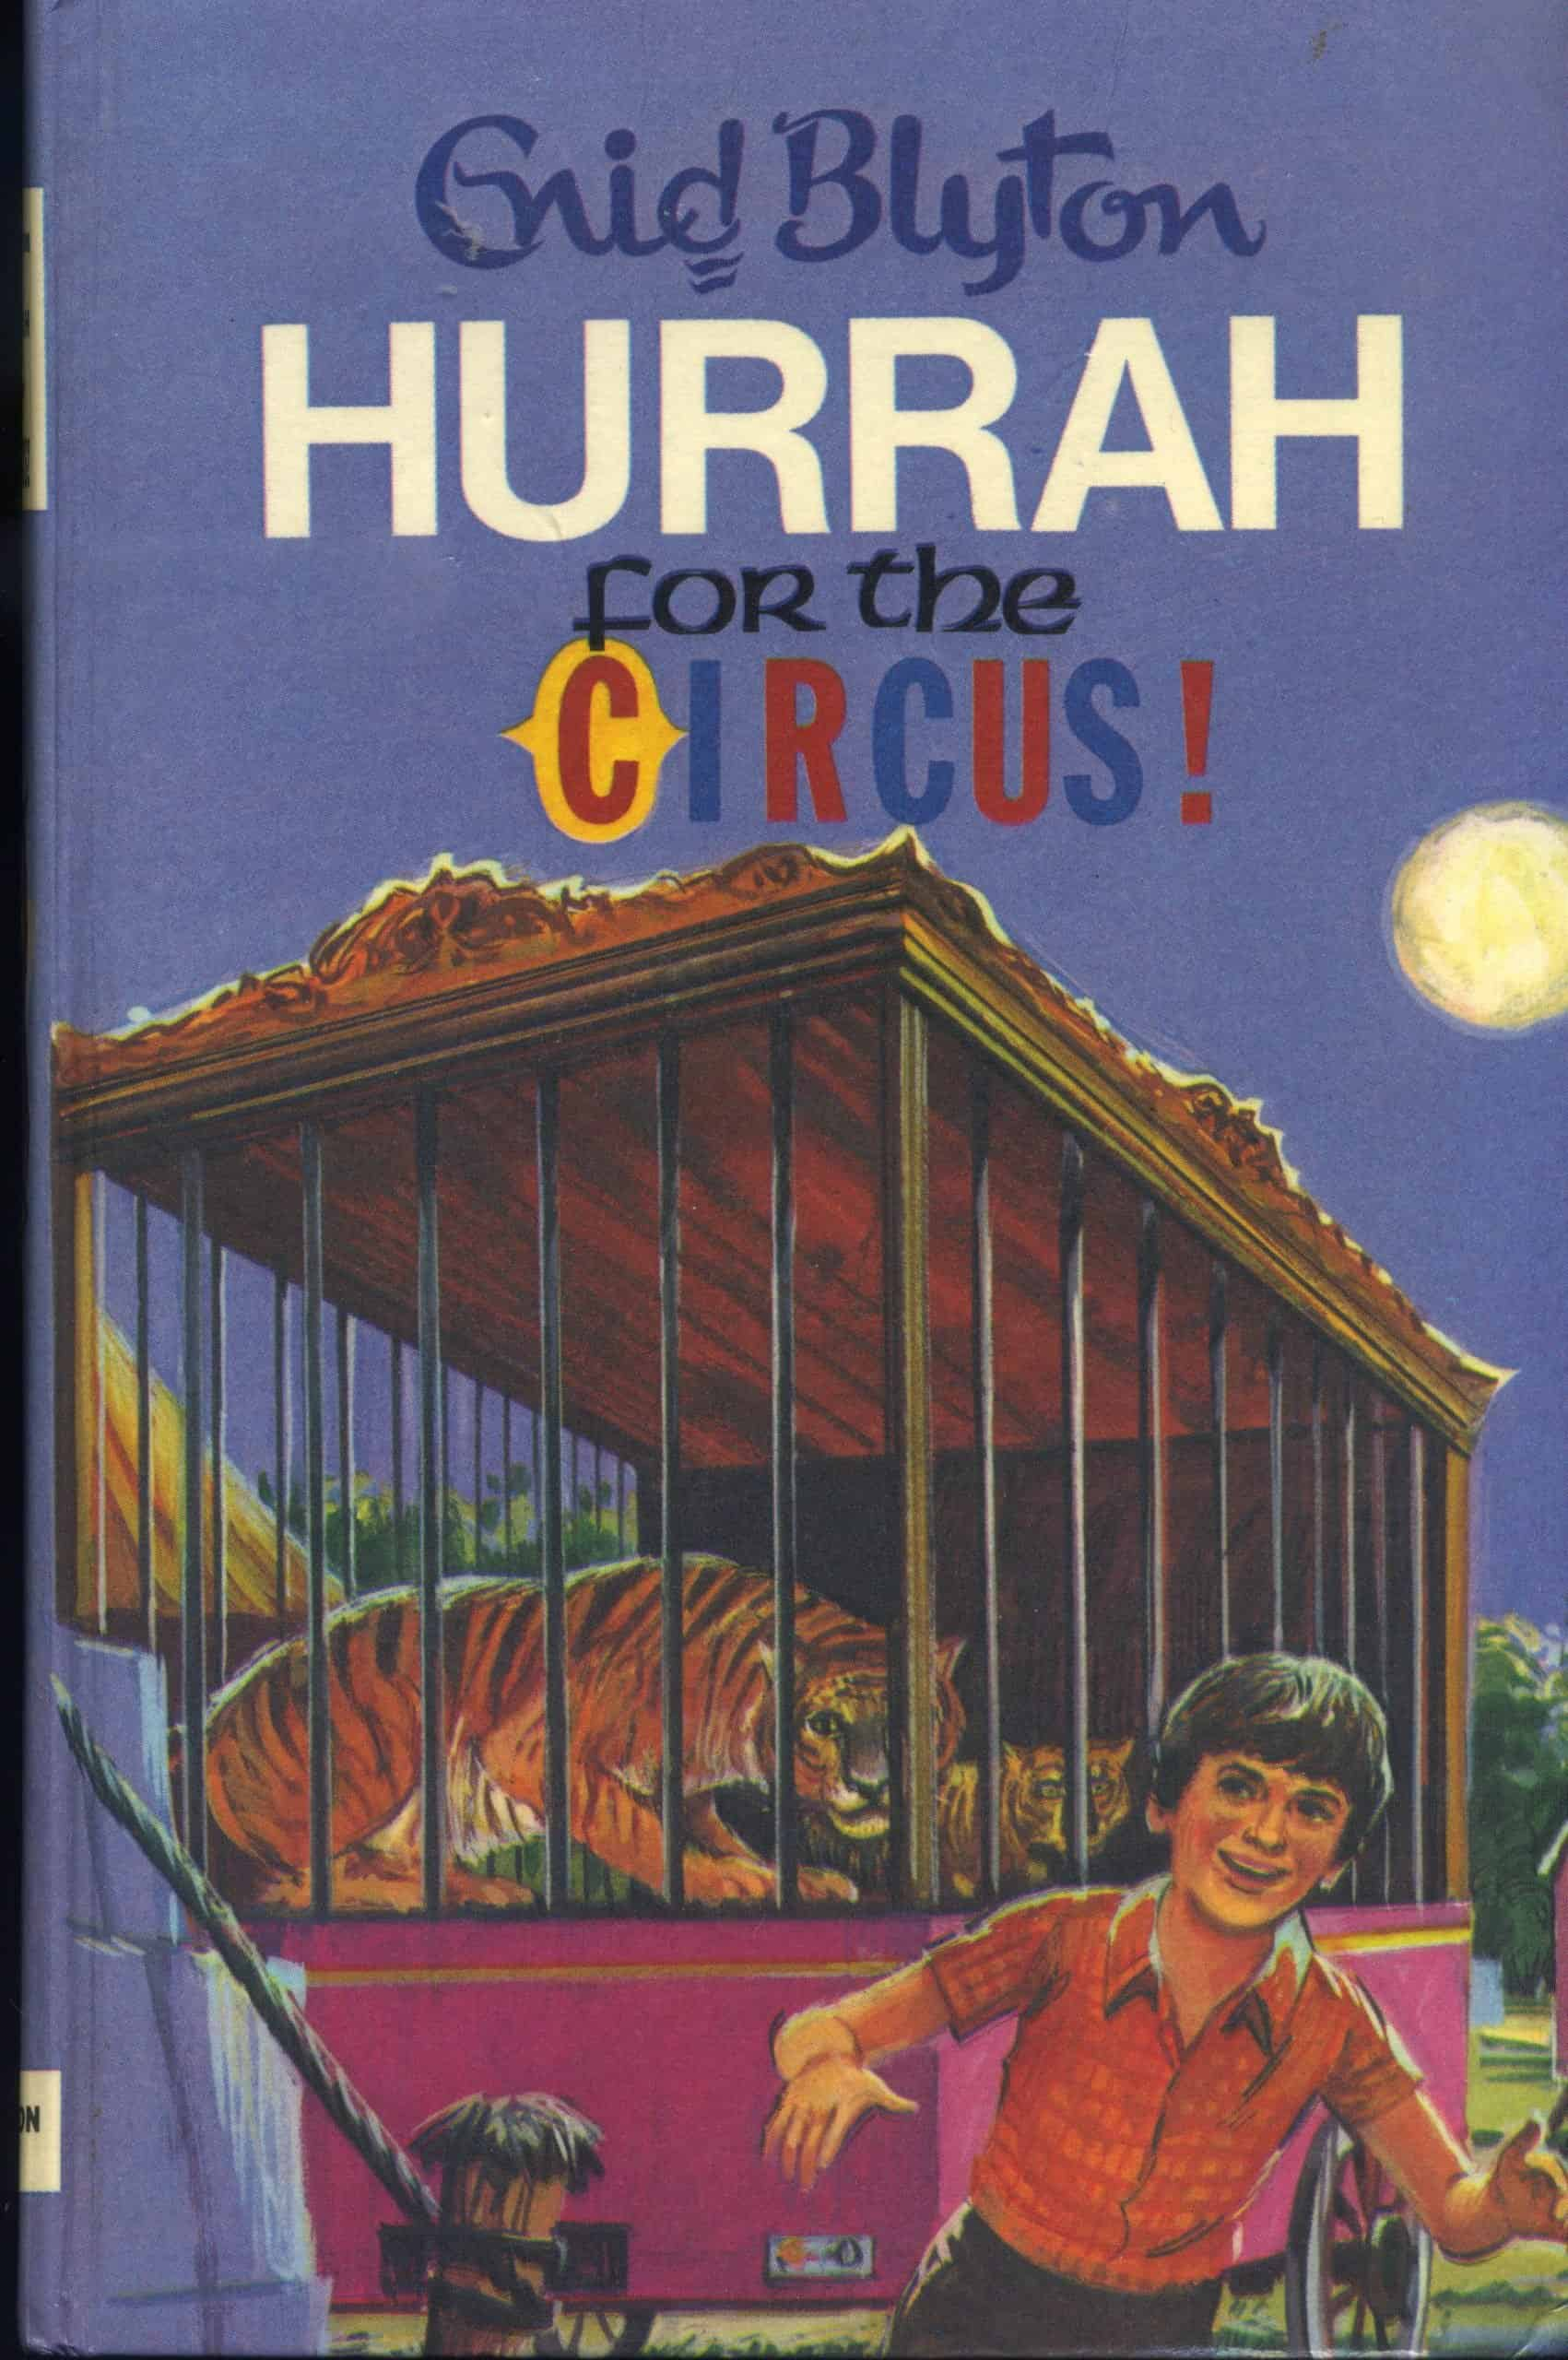 Hurrah for the Circus Book Cover Enid Blyton